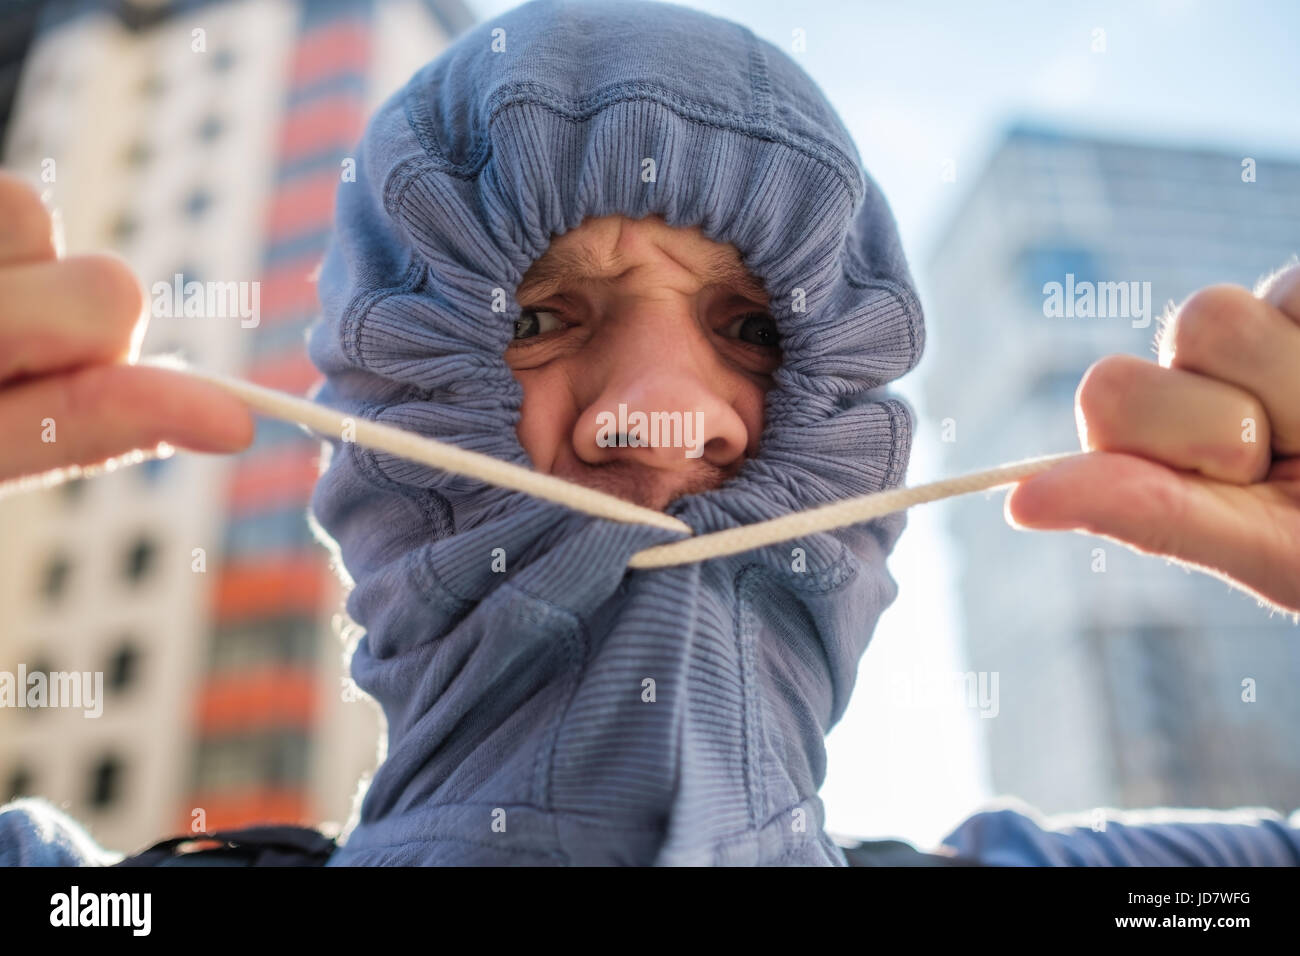 Caucasianyoung man hiding unshaven face with hood. Secrecy and mystery. Sociopathy and fear of going out. - Stock Image